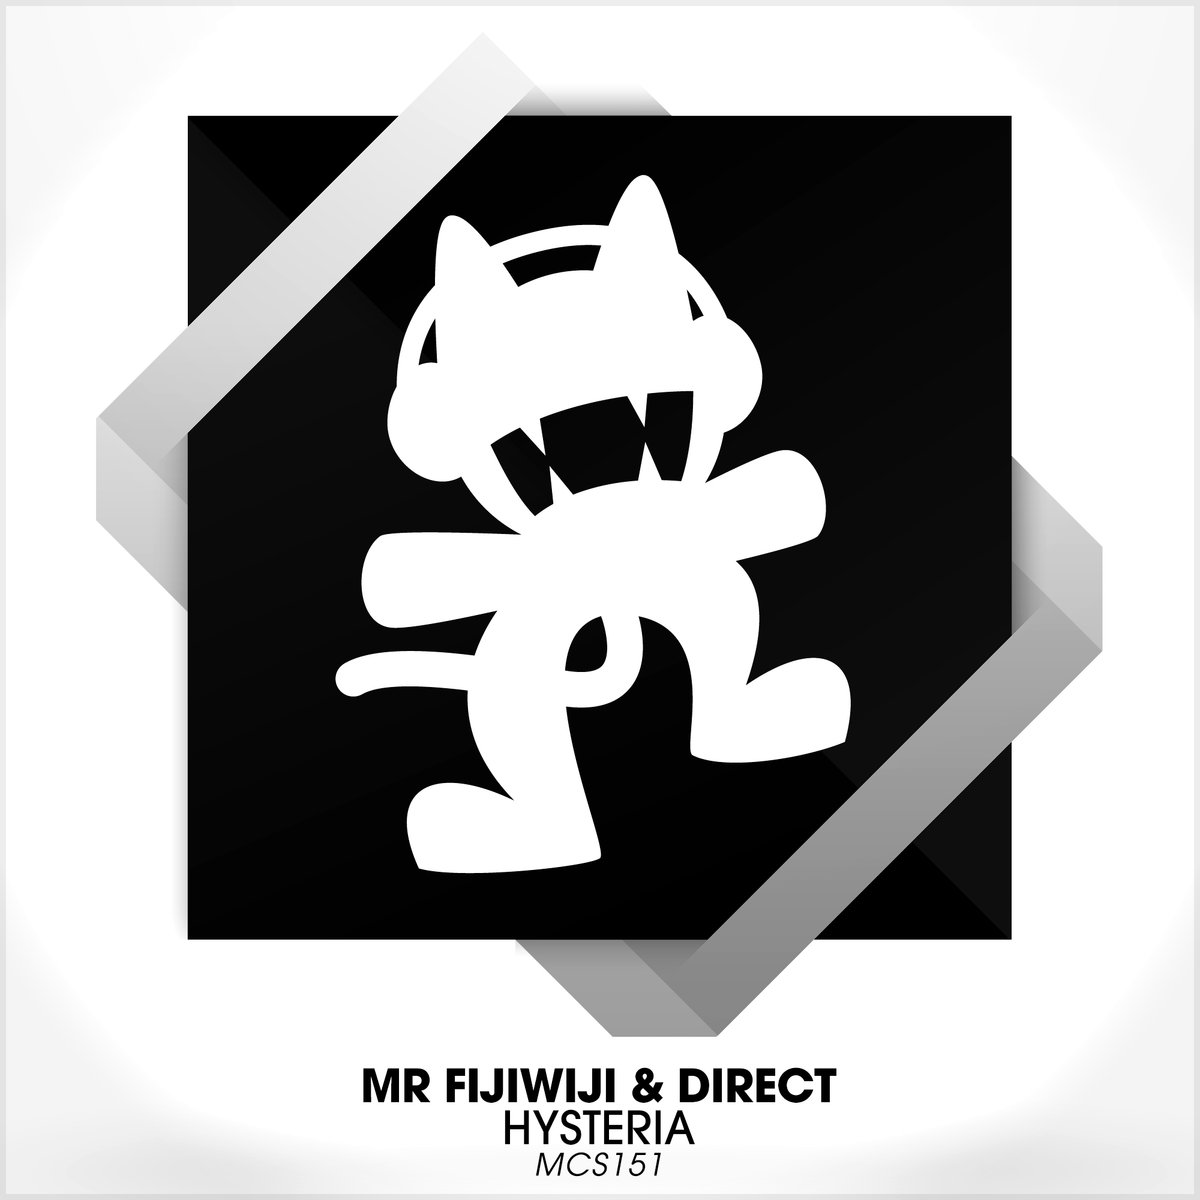 Hysteria (Mr FijiWiji & Direct)